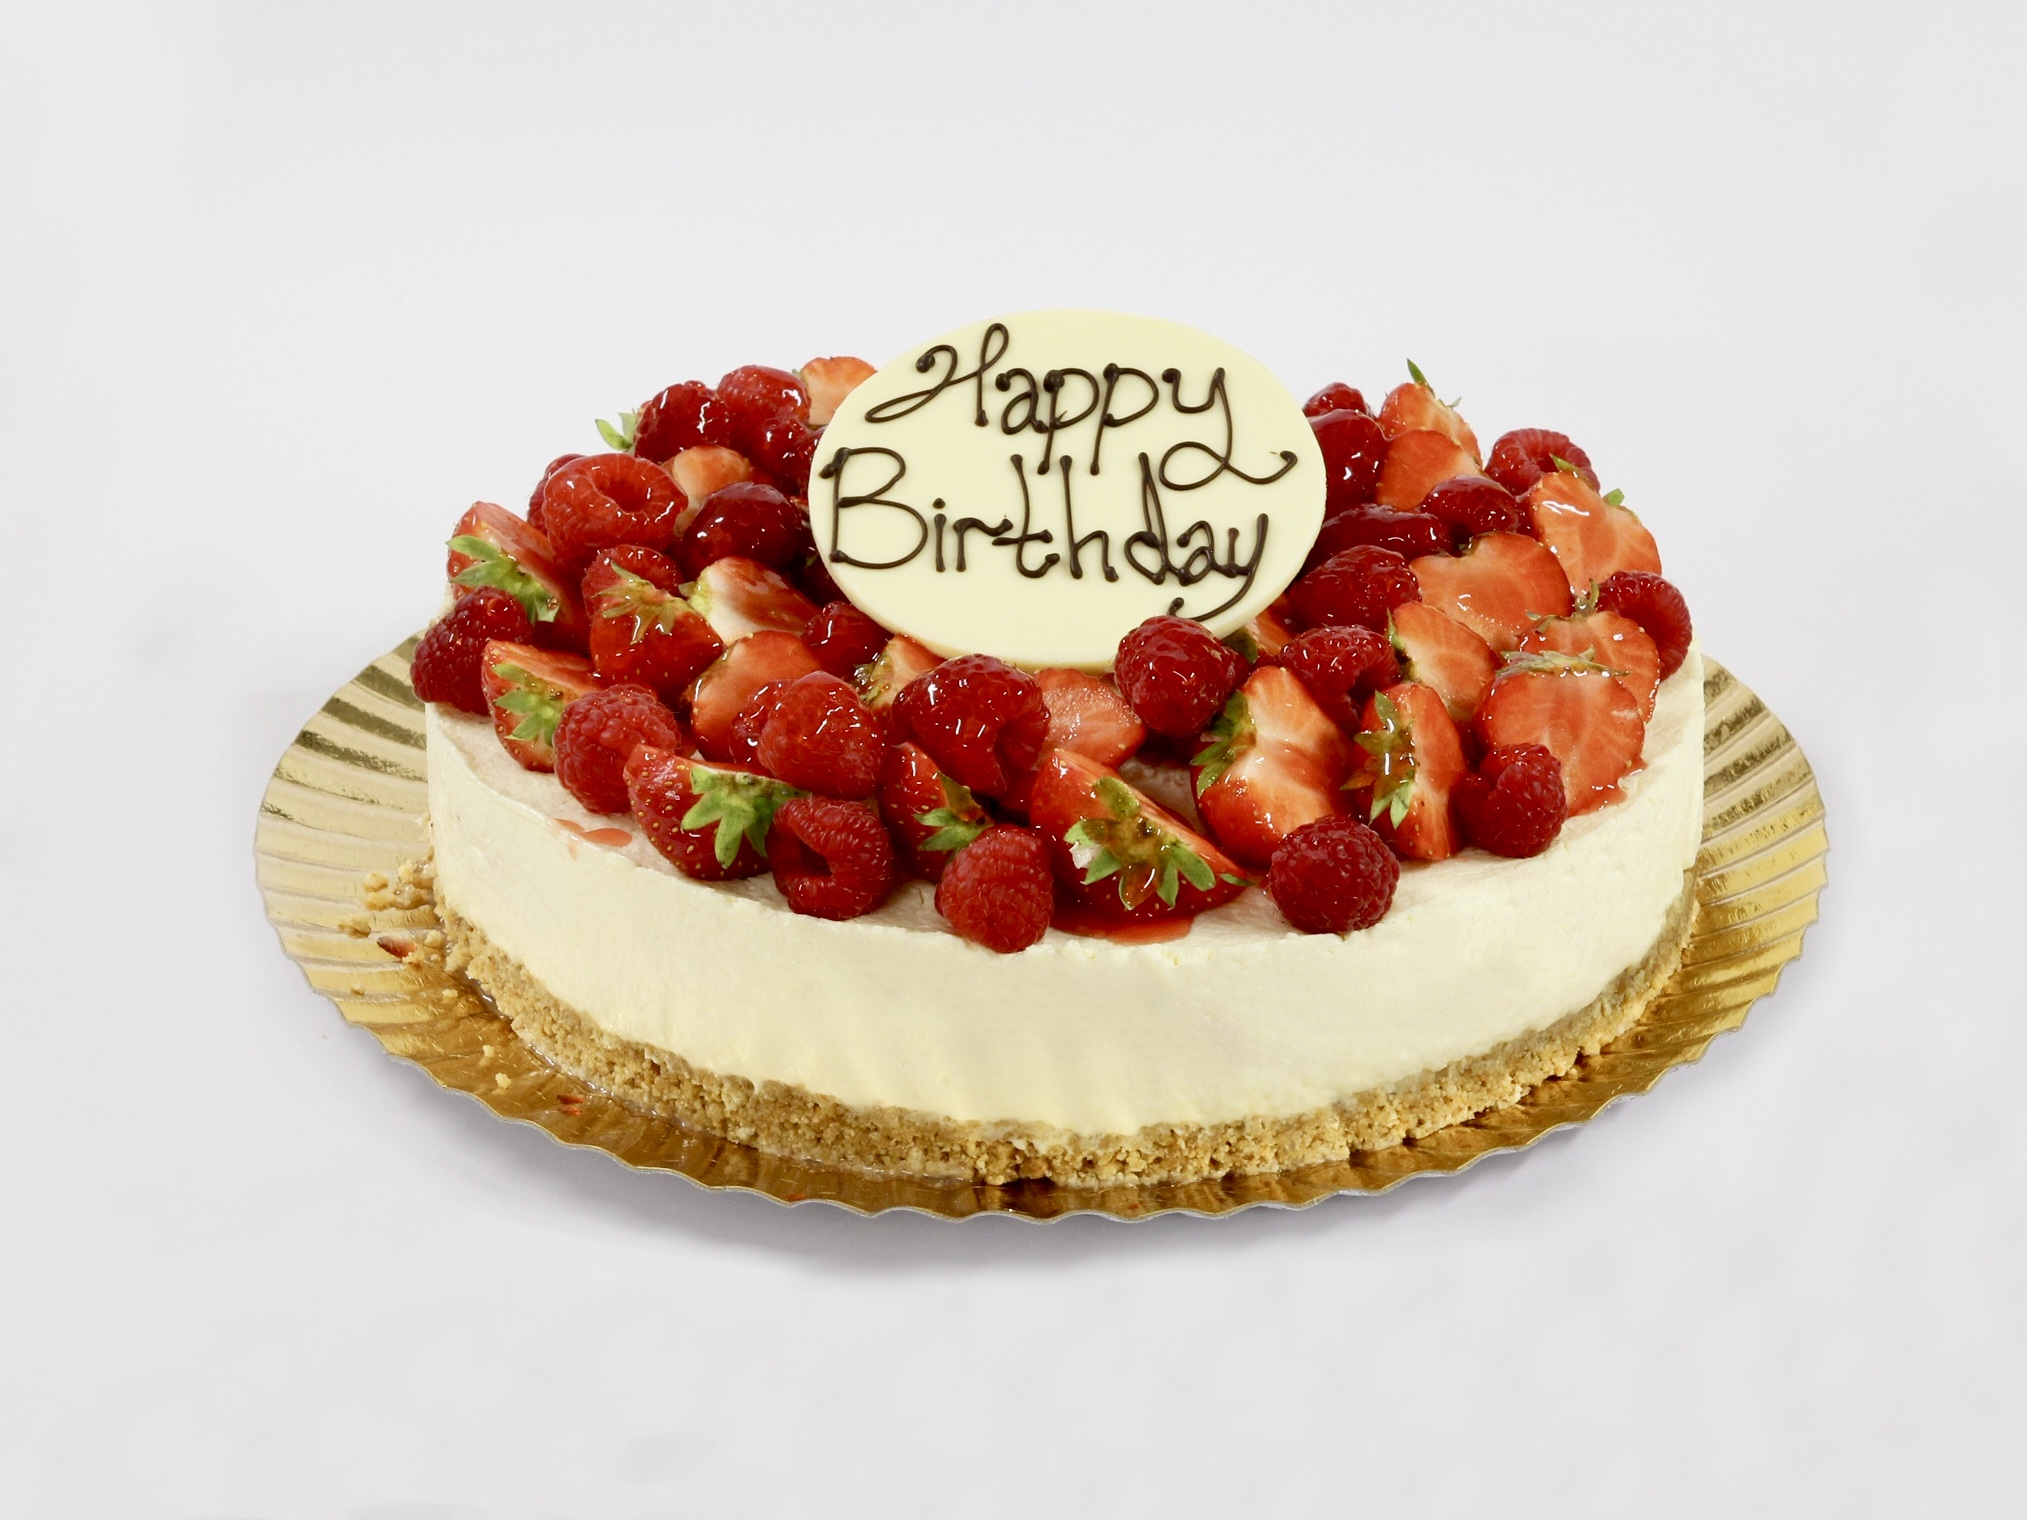 Celebration Cakes - Strawberry Cheesecake Celebration Cake